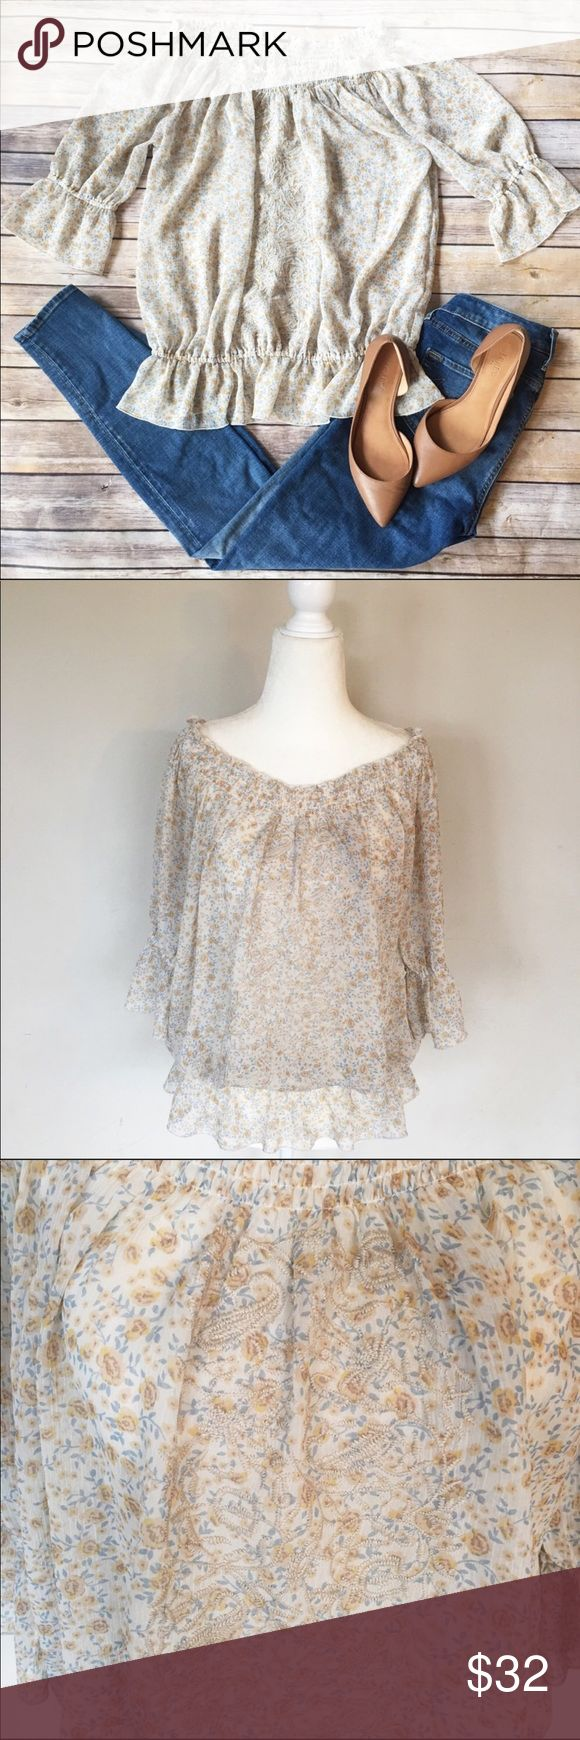 Free People Floral Embroidered Peasant Blouse This top is so beautiful & feminine with Boho vibes! Pair with skinny jeans, flats or booties. Embroidery on the front with light yellow and blue floral print. Elastic around bottom waist for billowing look and elastic at bottom of sleeve for a pretty flare. Neckline is elastic so it can be dropped down and worn along shoulders. Top of shoulder to bottom hem measures approx 26 in. armpit to armpit measures approx 21 in. Size is XS but would fit a…